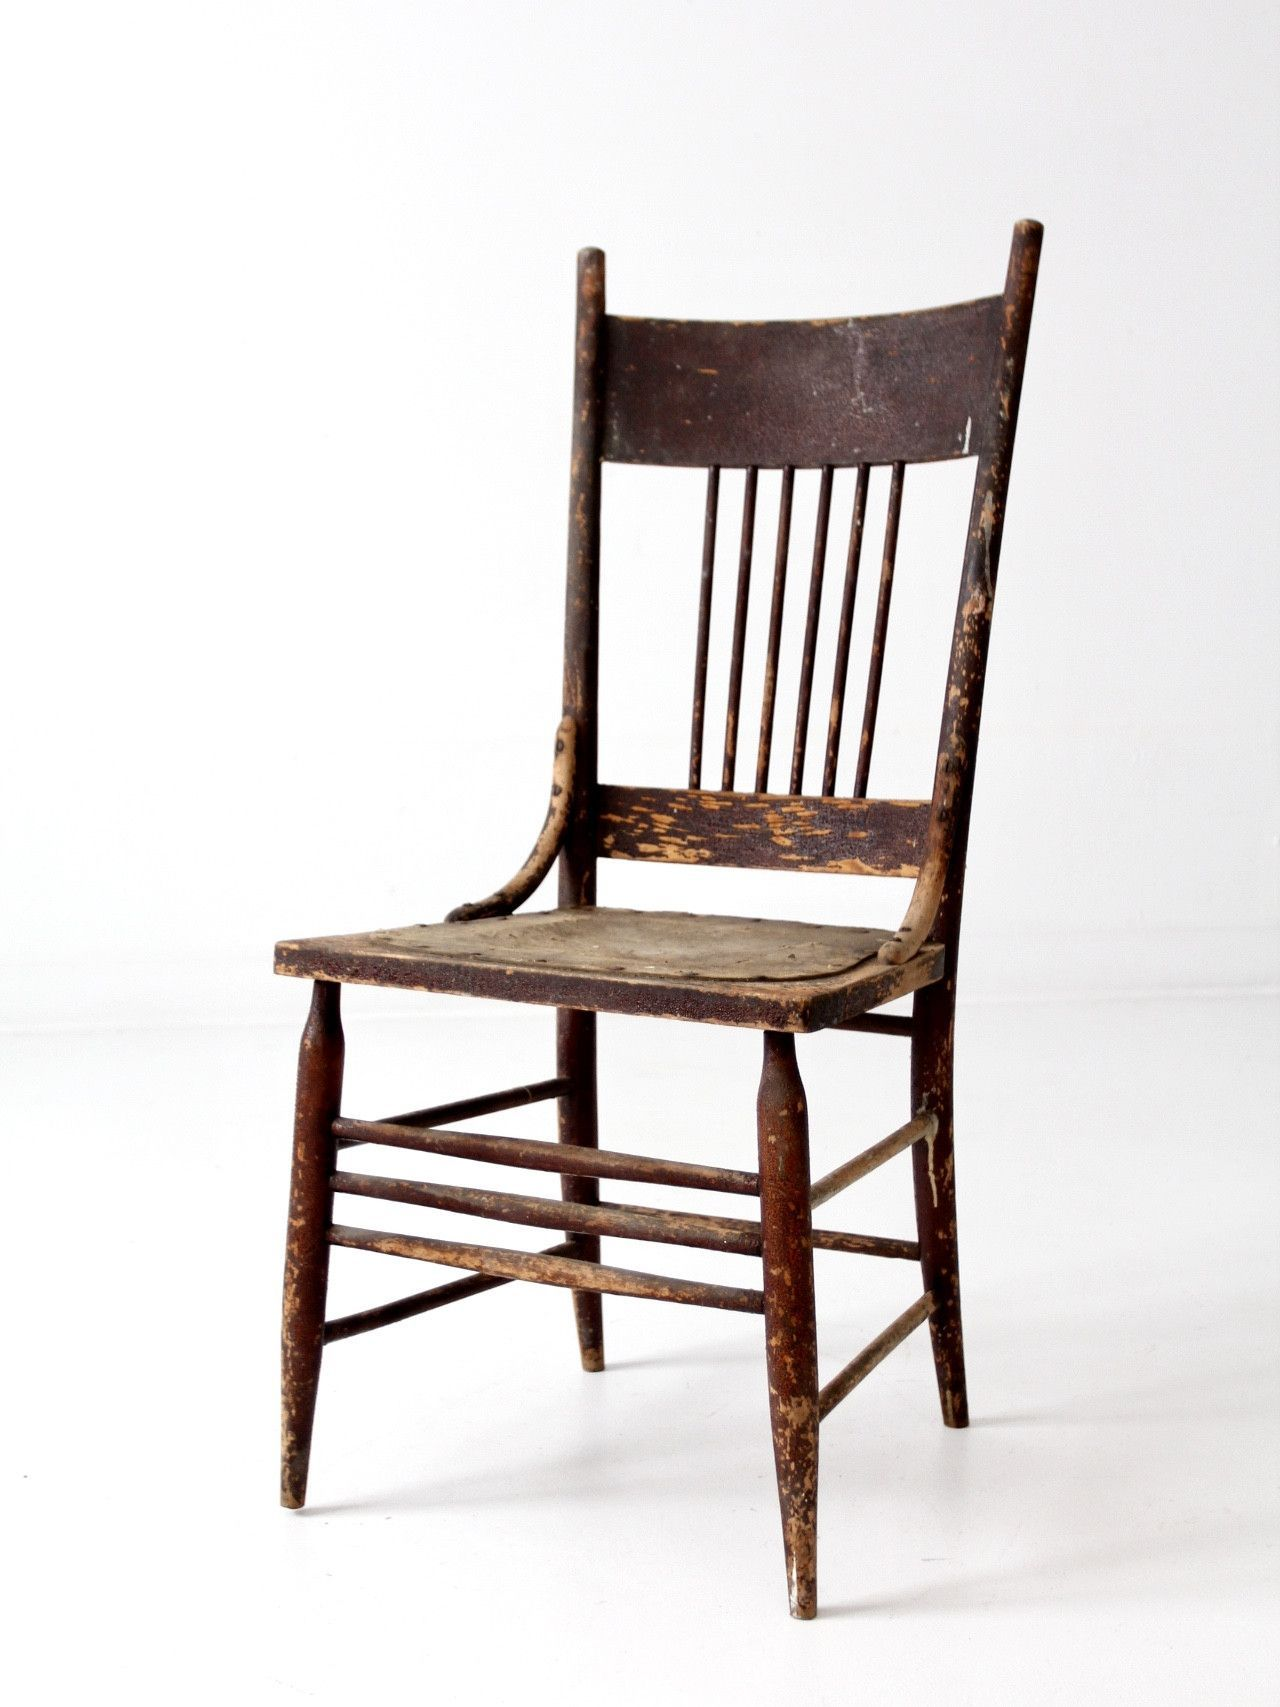 Antique Spindle Back Chairs | Antique Furniture